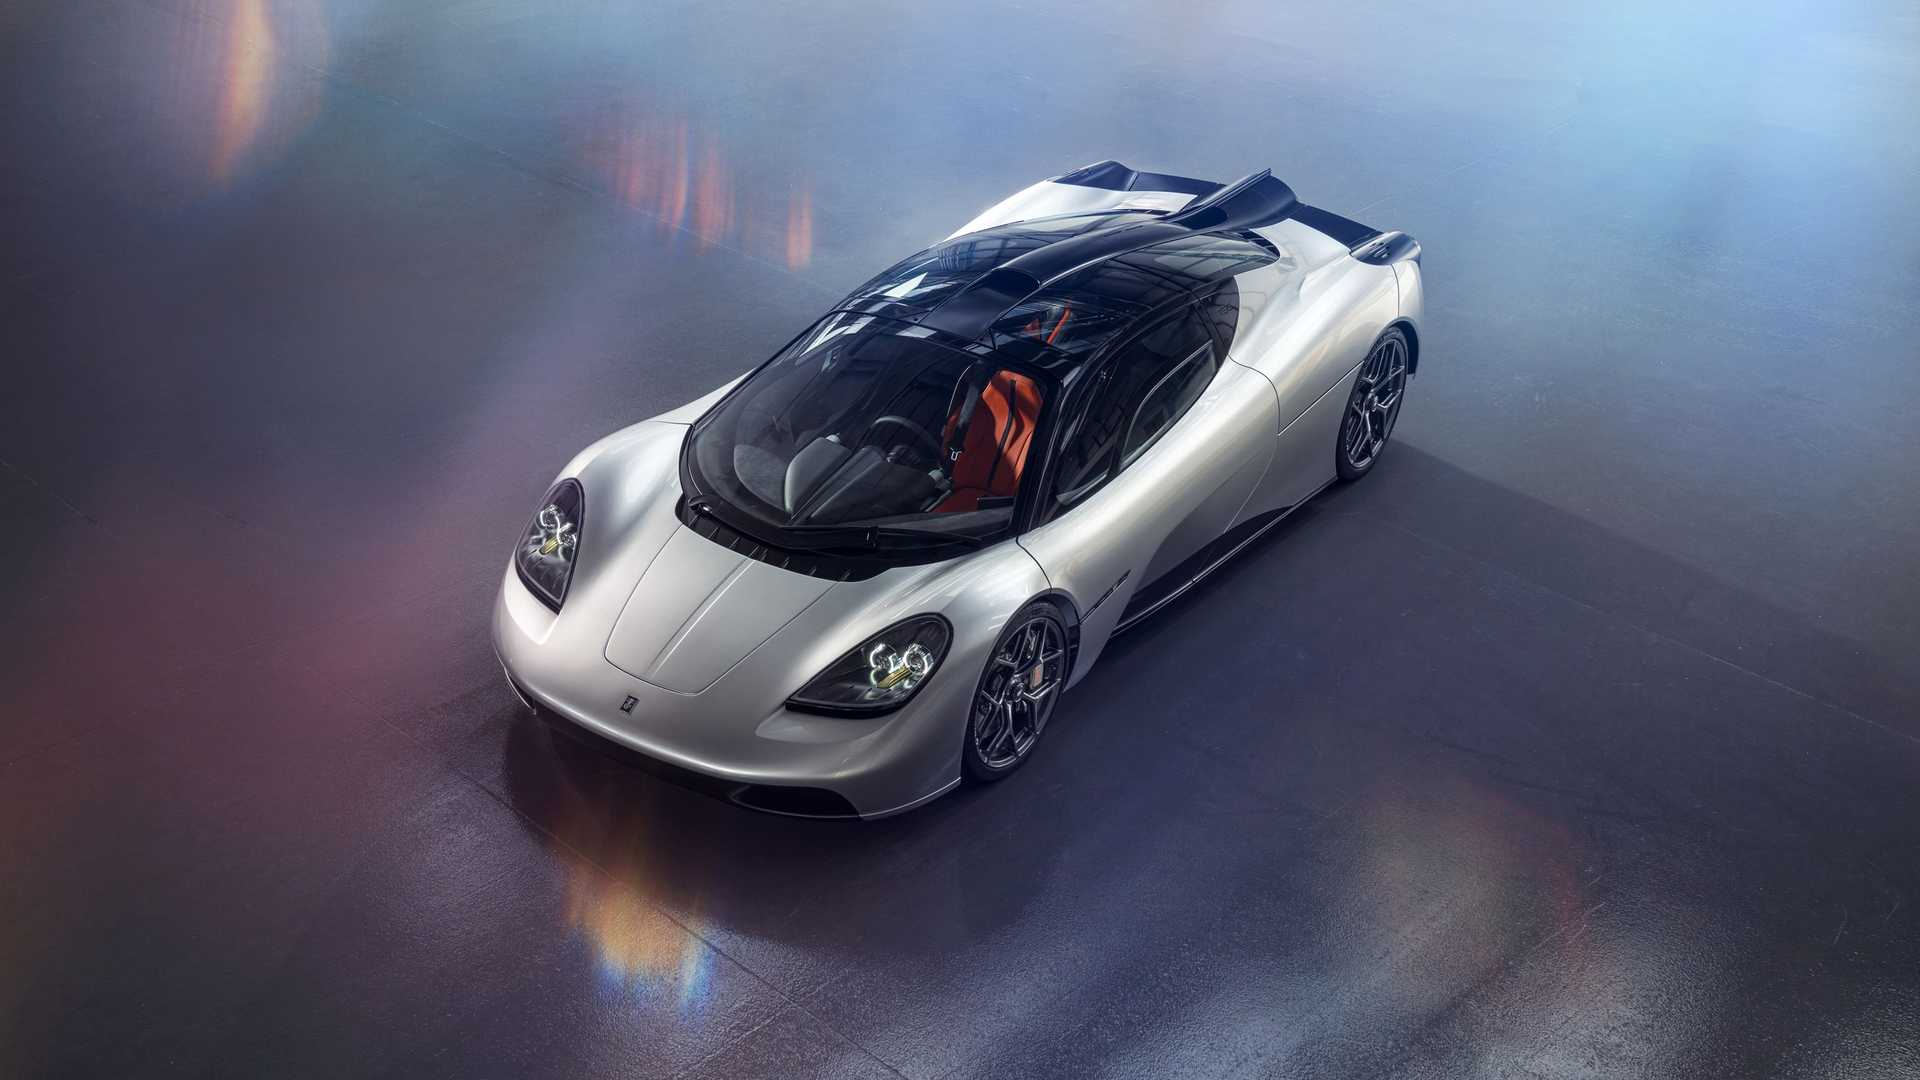 Gordon Murray T50 supercar gets track-only S version